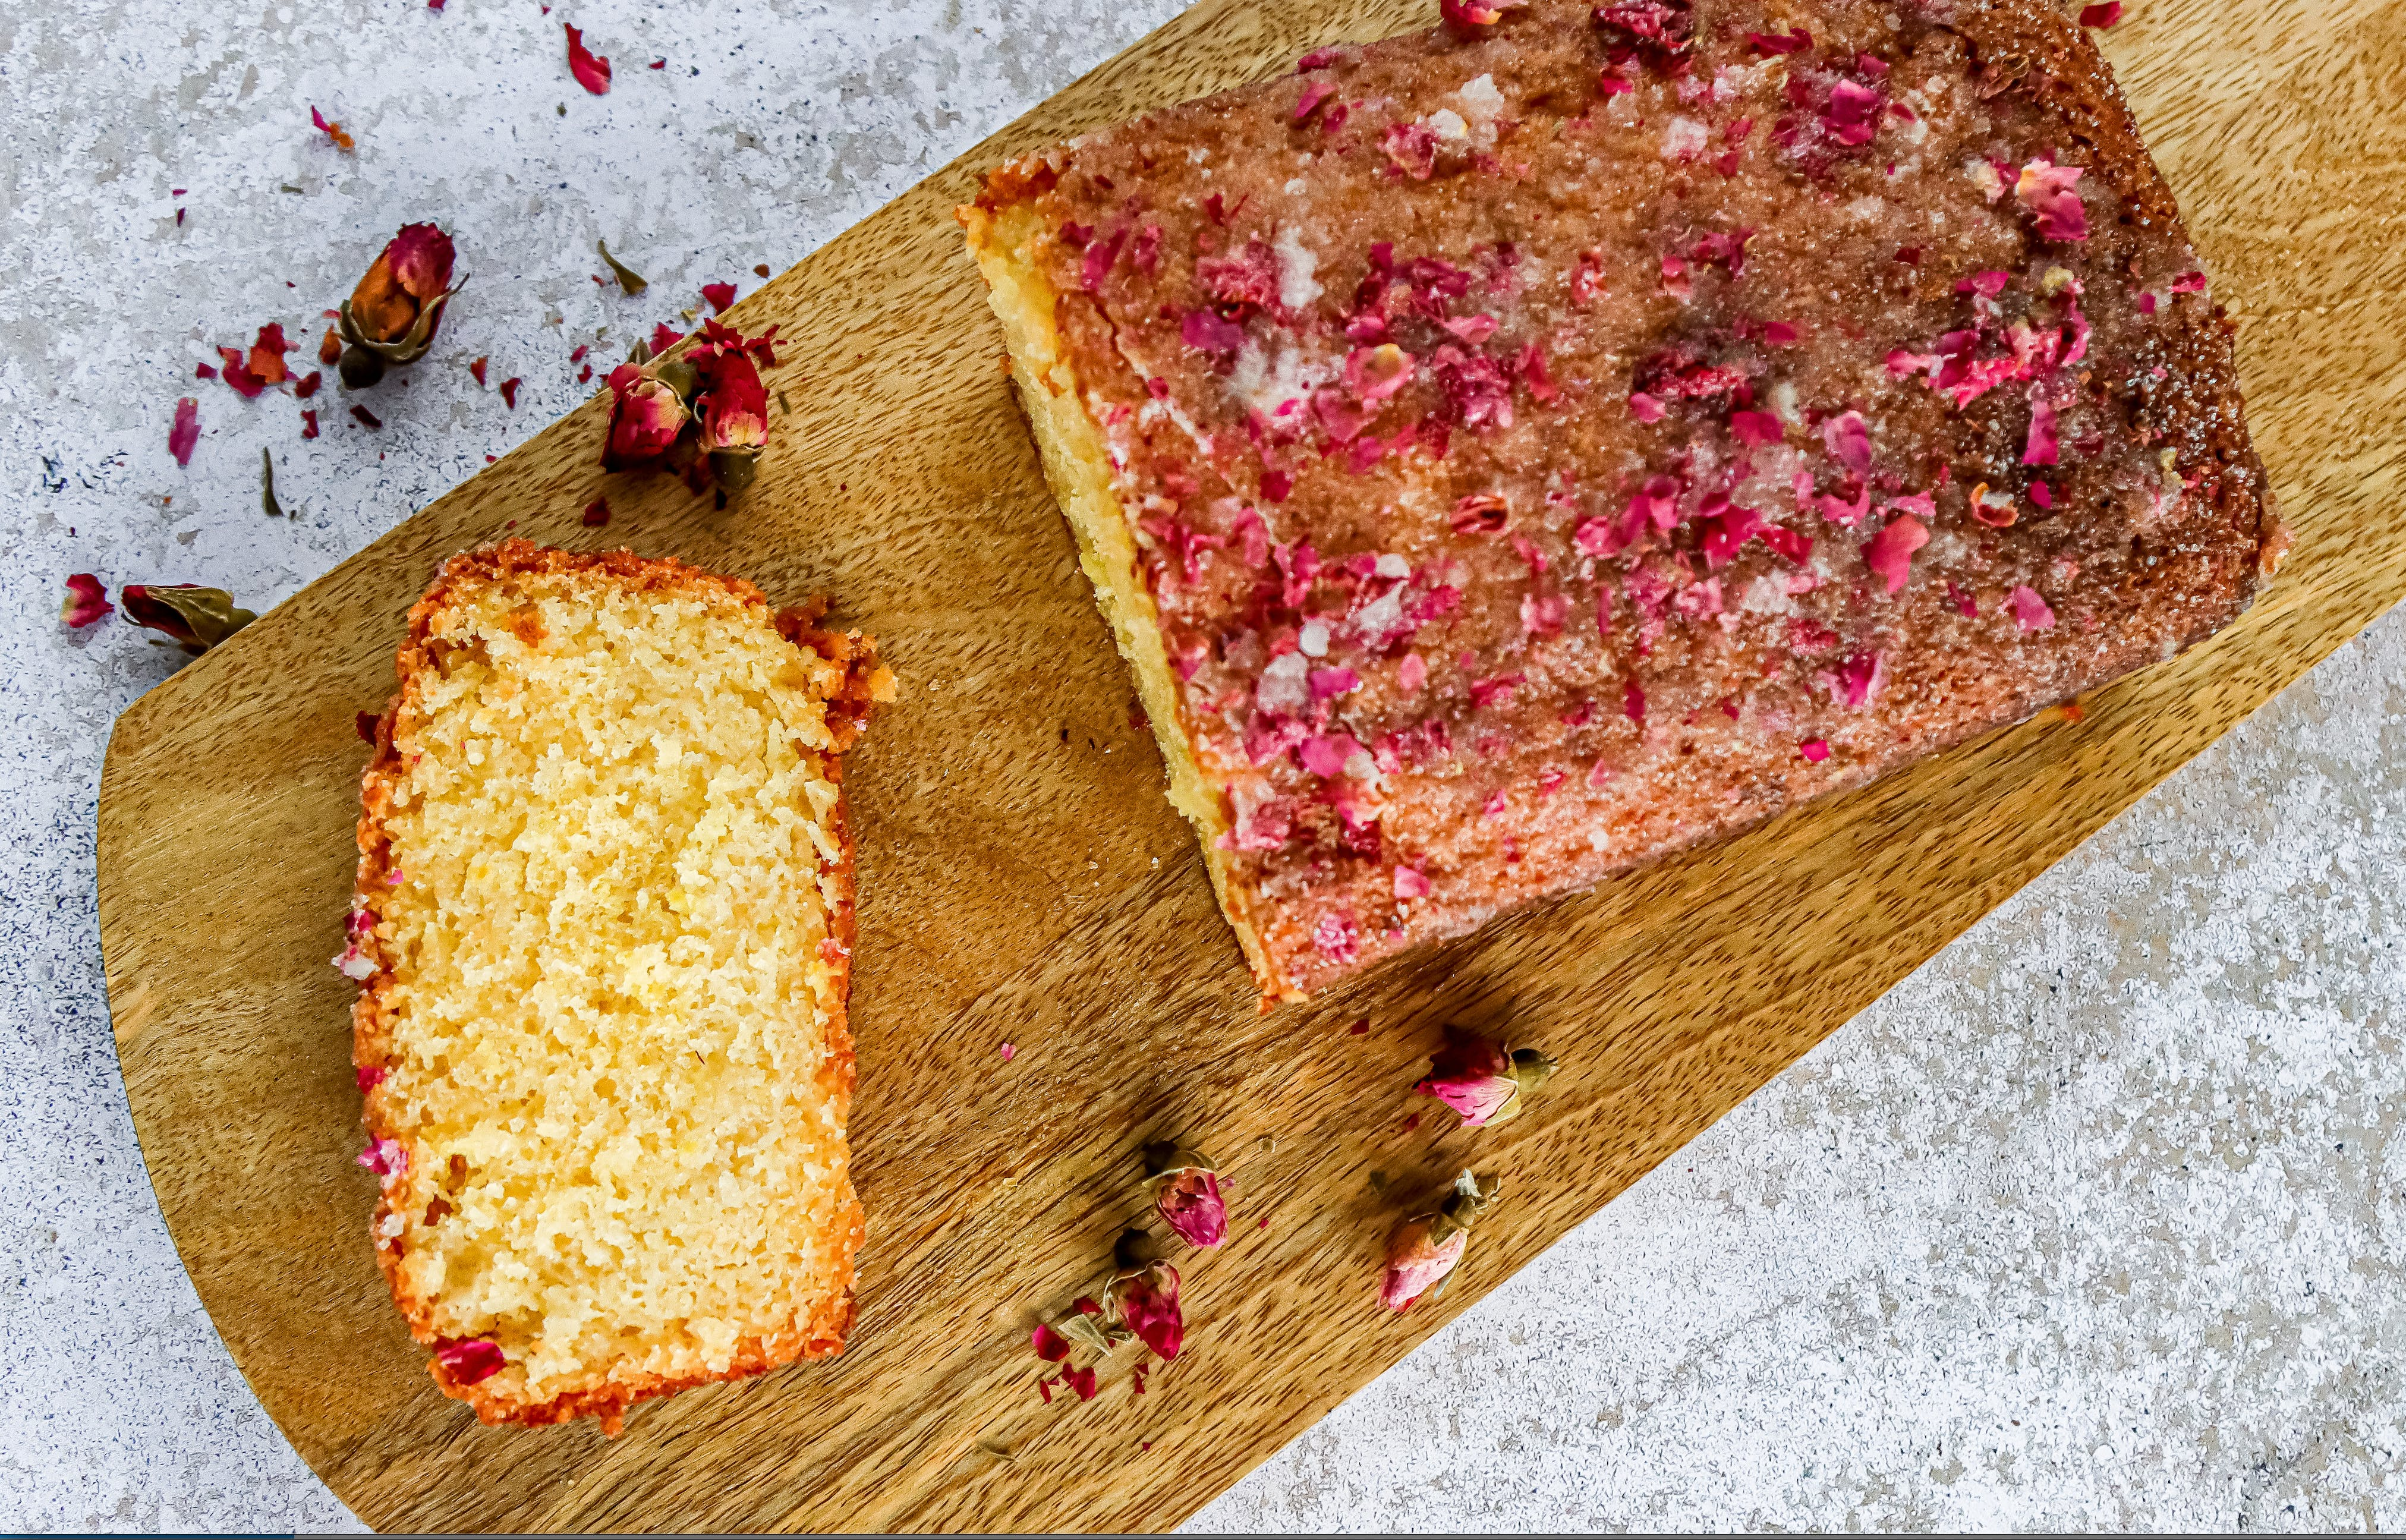 Lemon and rose drizzle cake